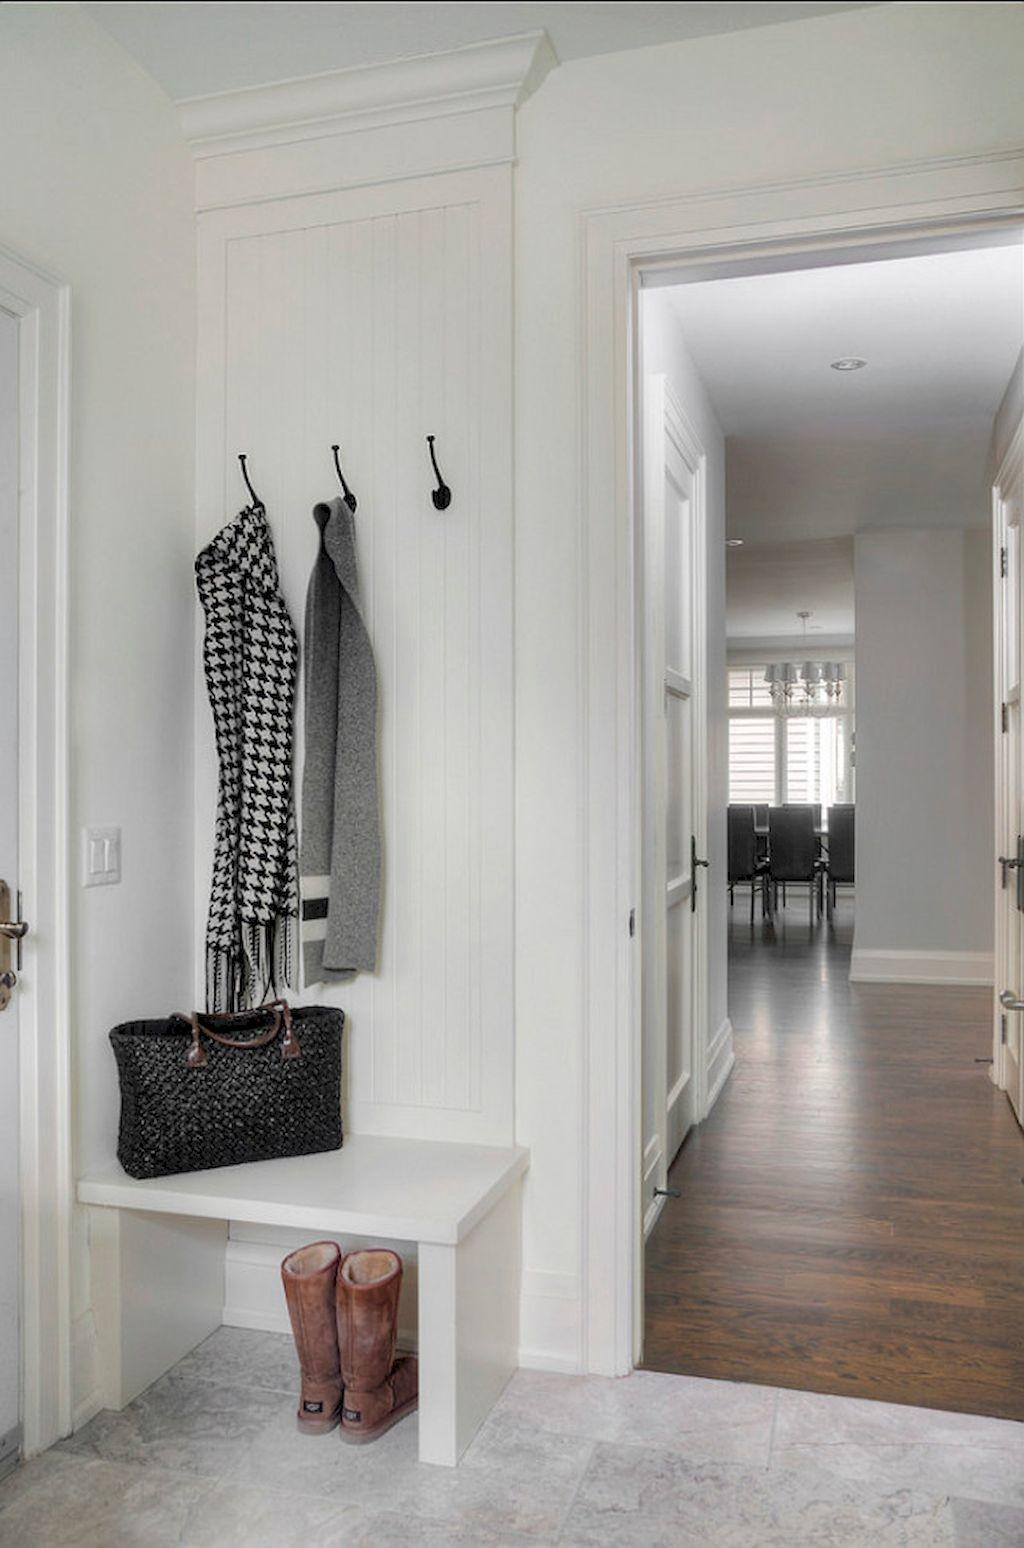 Inspiring Small Mudroom Bench Ideas Besideroom